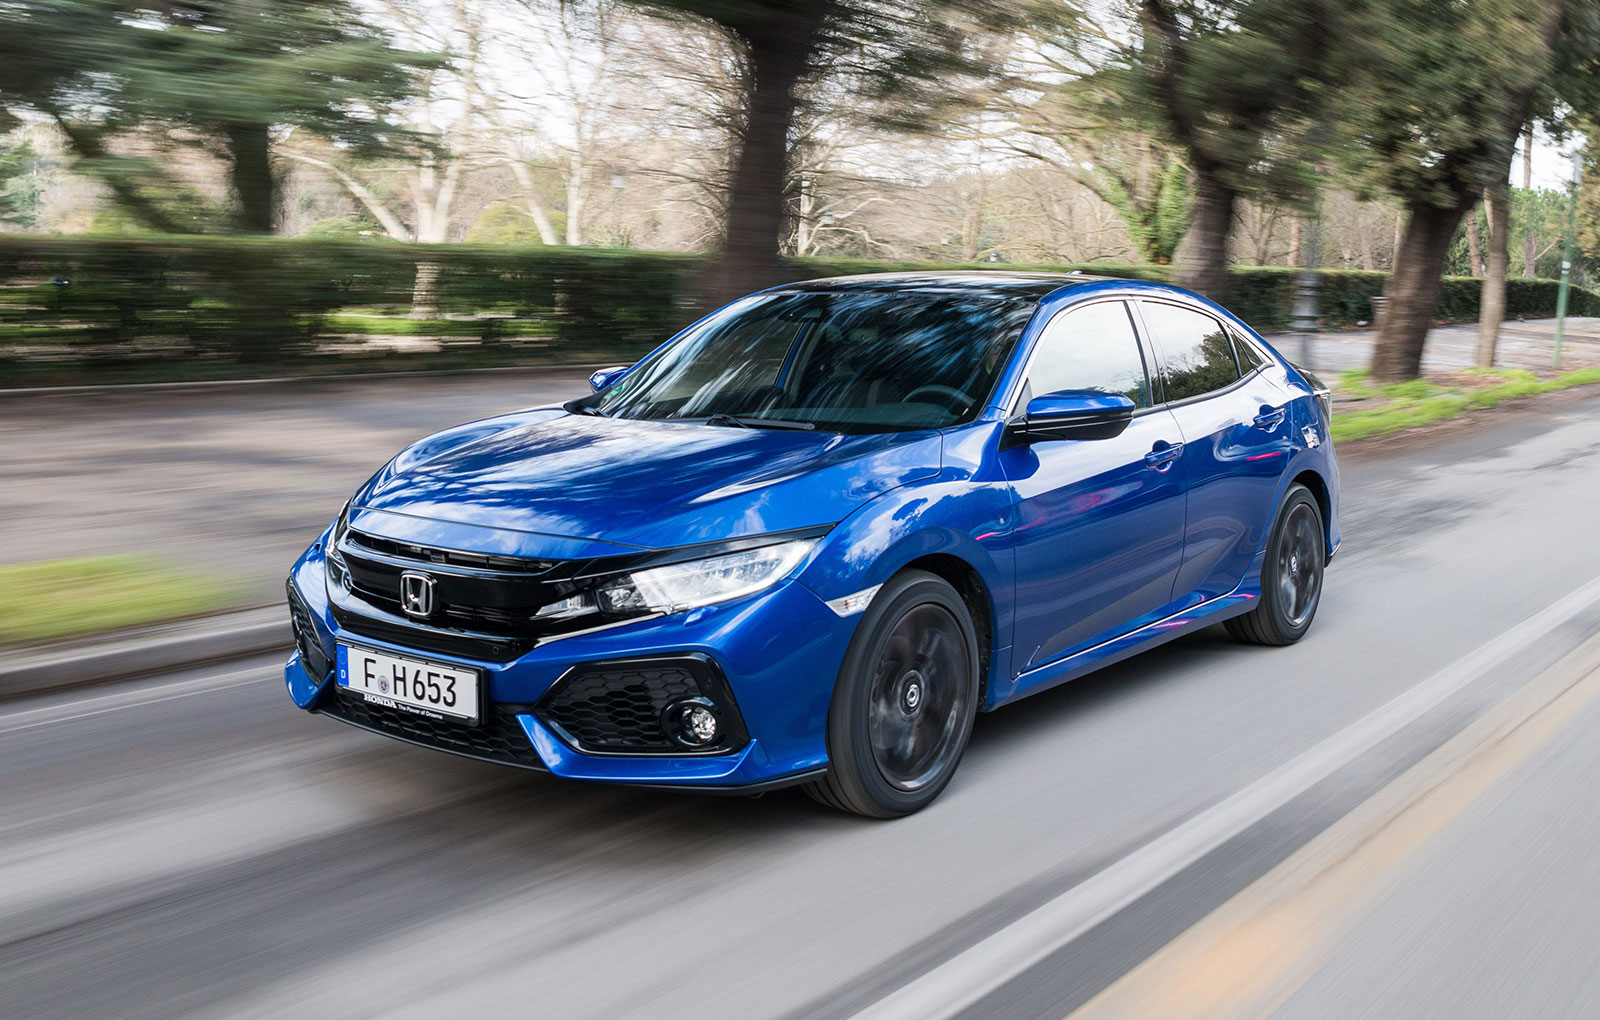 2019 Honda Civic Sedan, Coupe Feature Refreshed Styling, New Sport Trim - autoevolution